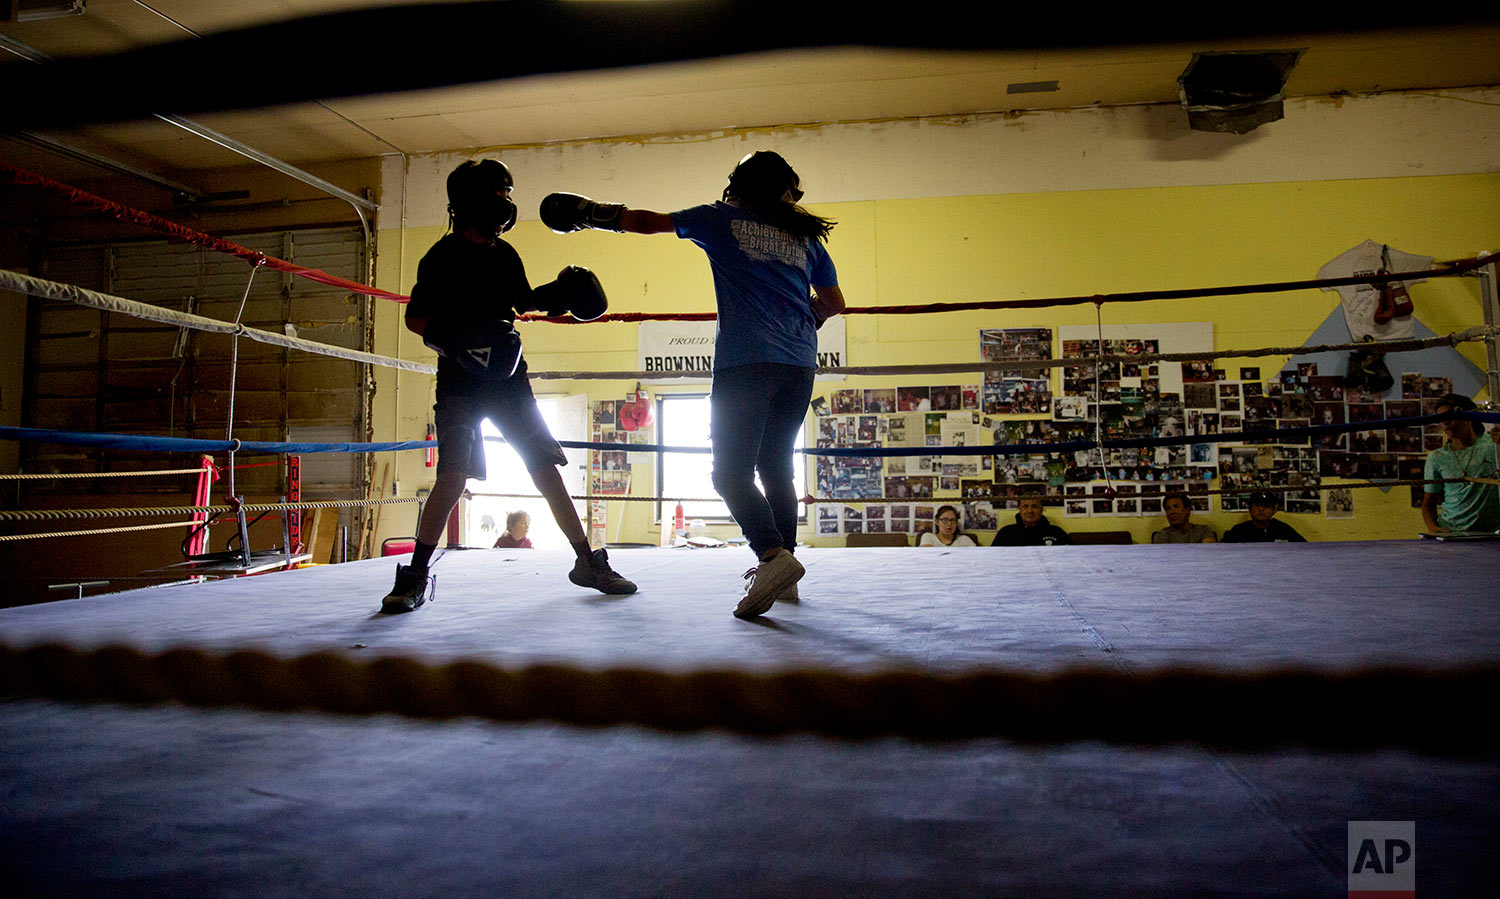 """Beatrice Kipp, 13, right, spars with Timmy Sellars, 14, at the Blackfeet Native Boxing Club on the Blackfeet Indian Reservation in Browning, Mont., July 14, 2018. """"I'm protective of our children because of human trafficking. What happened to Ashley is really worrying,"""" said Frank  Kipp ,who teaches his daughters how to box and runs the club. """"We teach our girls if someone grabs you, you fight to your death.""""(AP Photo/David Goldman)"""